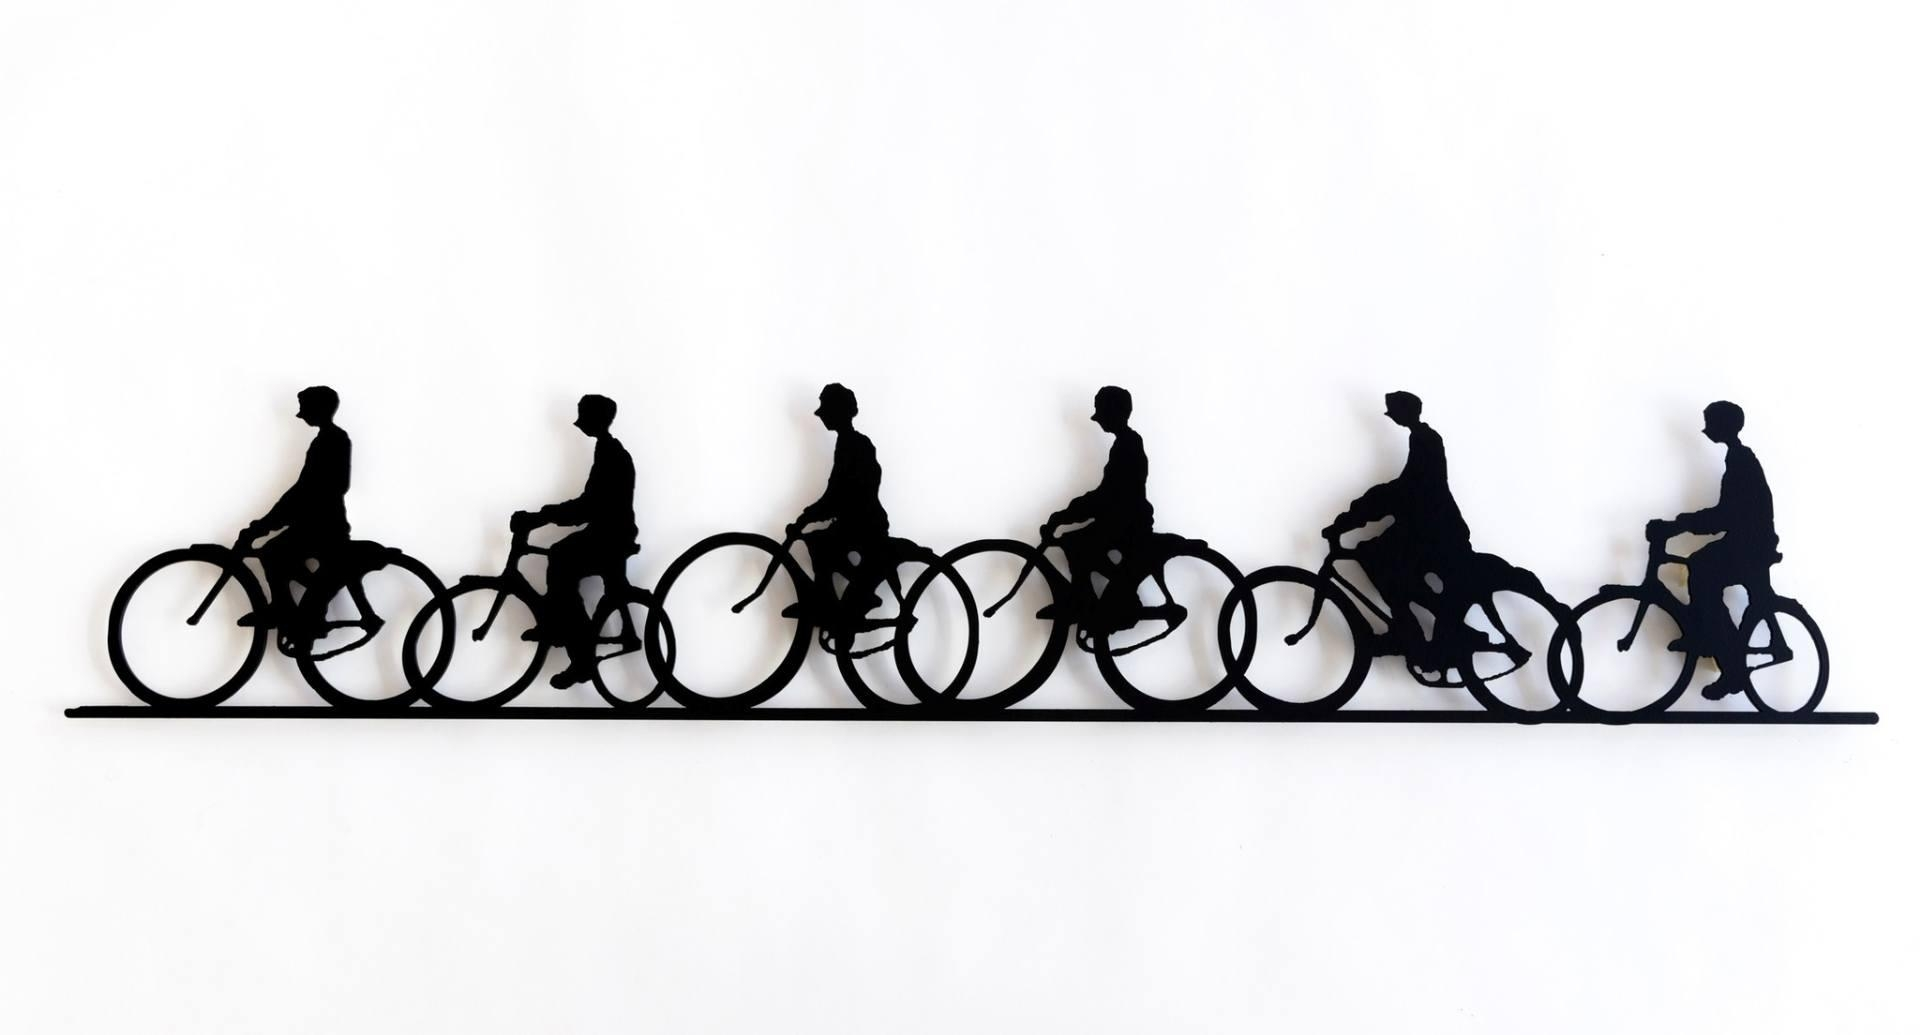 Saatchi Art: Six Bicycle Riders Sculptureuri Dushy Regarding Metal Bicycle Art (View 14 of 20)